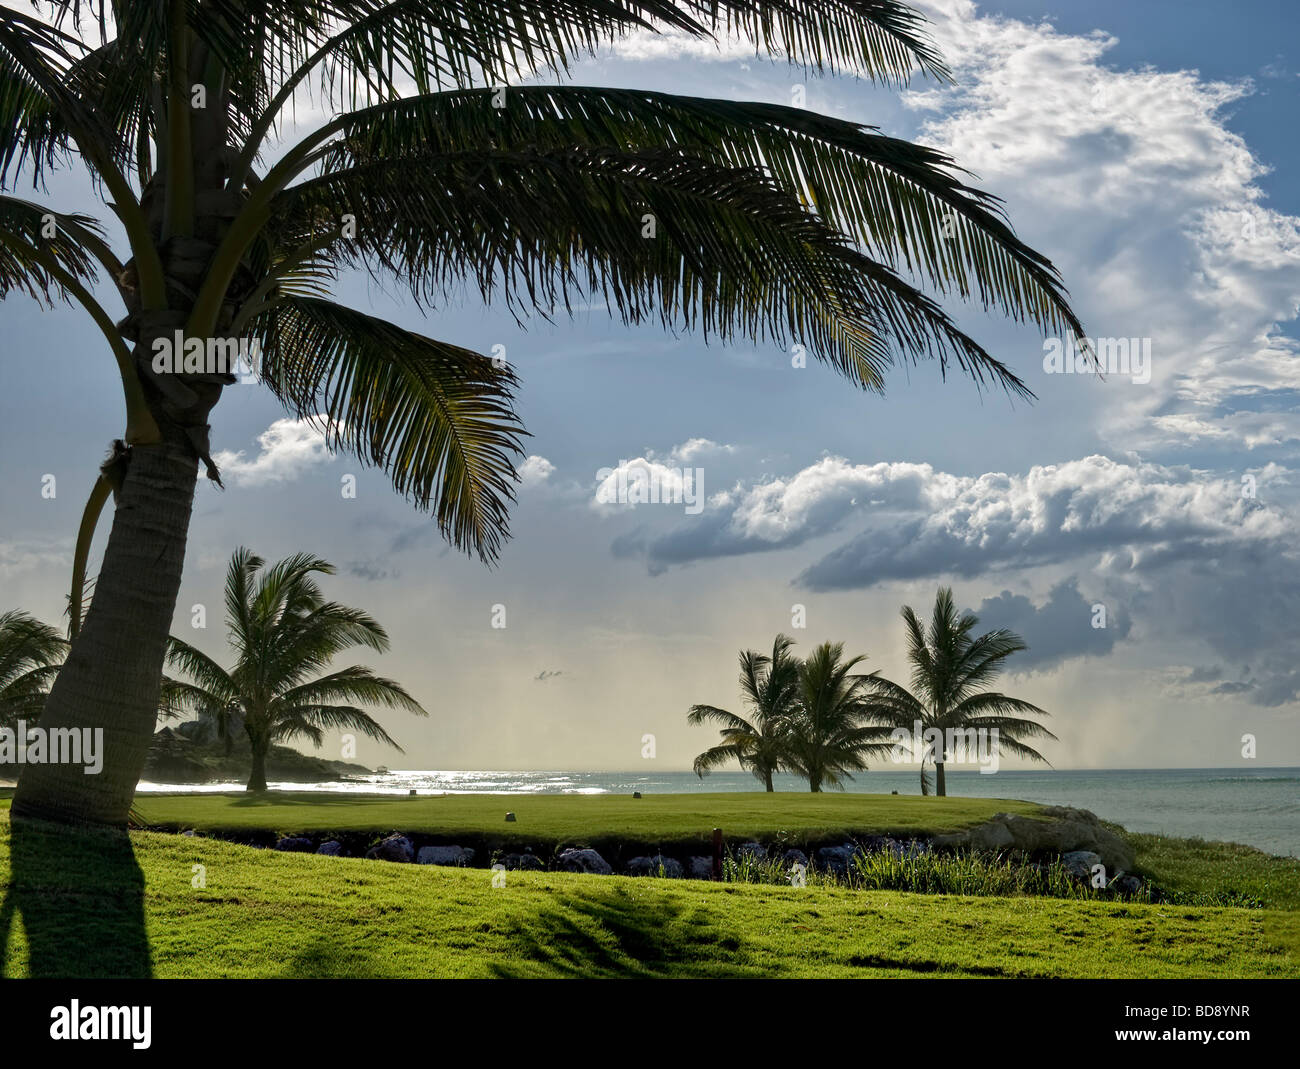 Tropical storm clouds build, bringing rain to Montego Bay - Stock Image